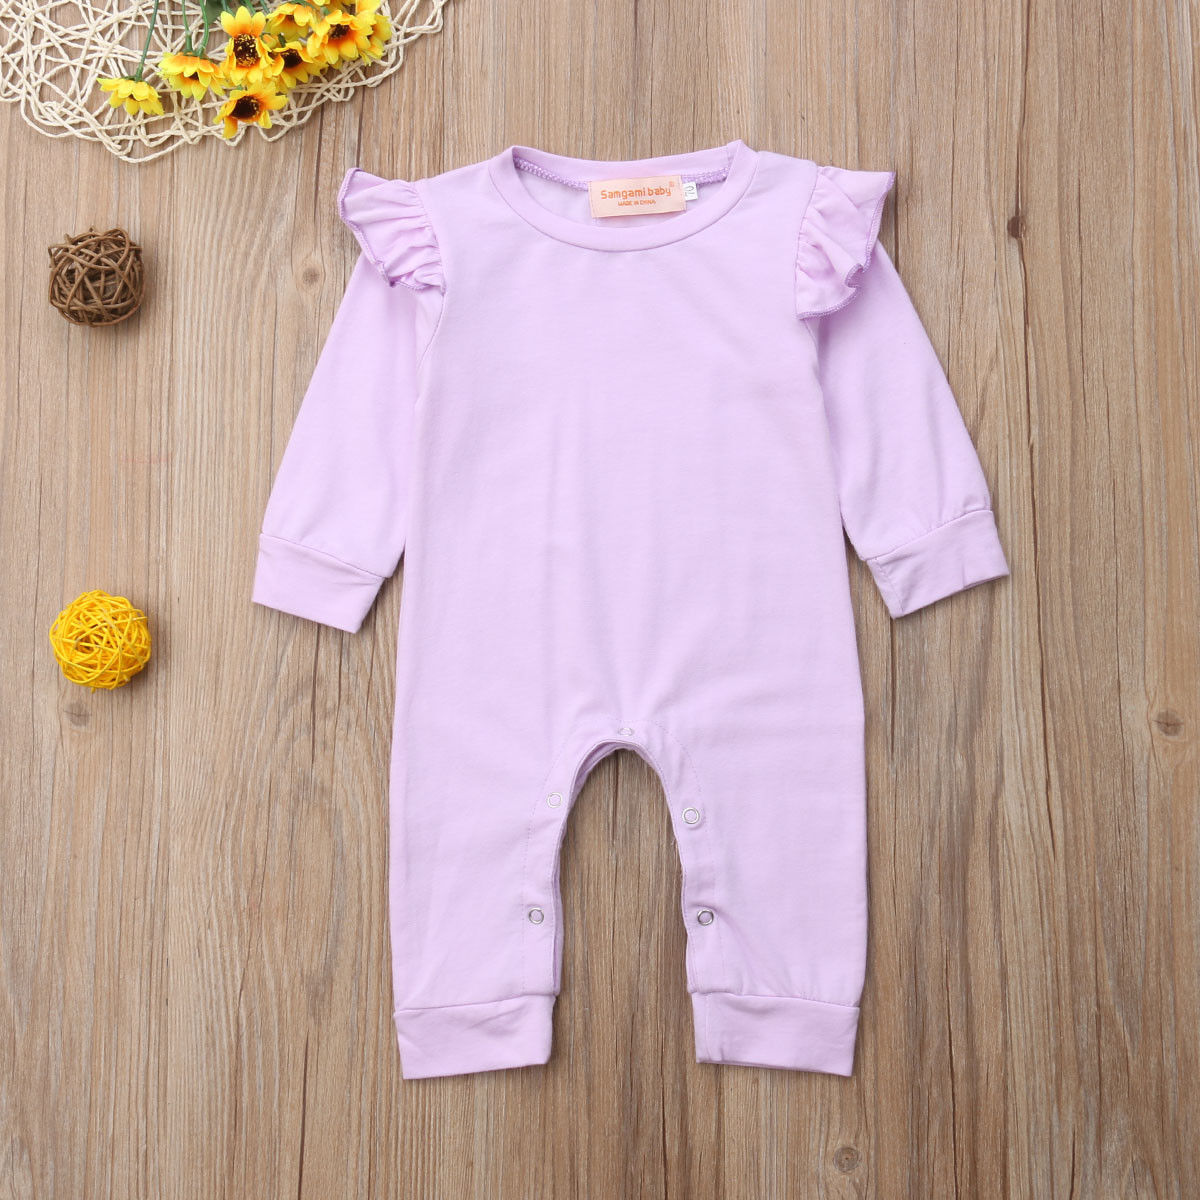 494353d18fd Toddler Newborn Baby Girl Romper Solid Purple Ruffles Long Sleeve Infant  Girls Jumpsuit Playsuit Autumn Baby Girl Clothing